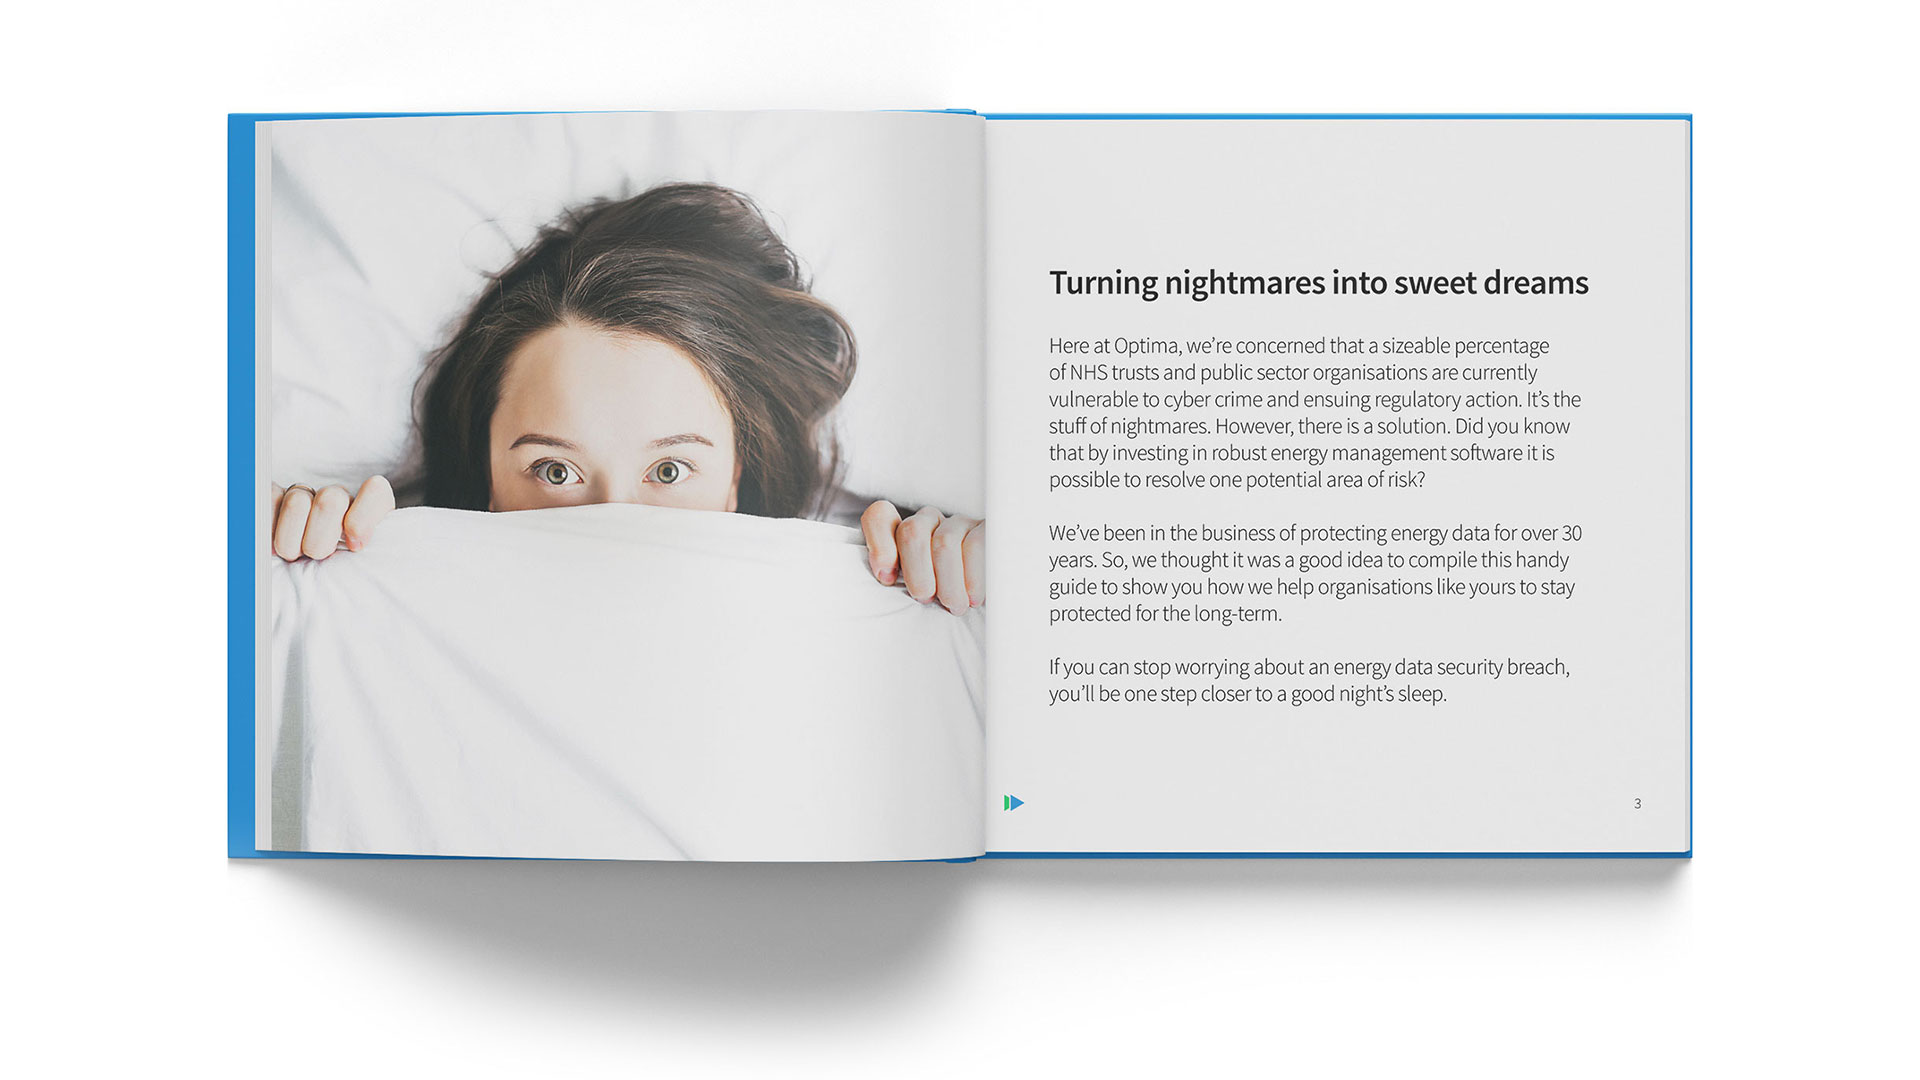 NHS book marketing collateral designed for Optima Energy by Content Coms